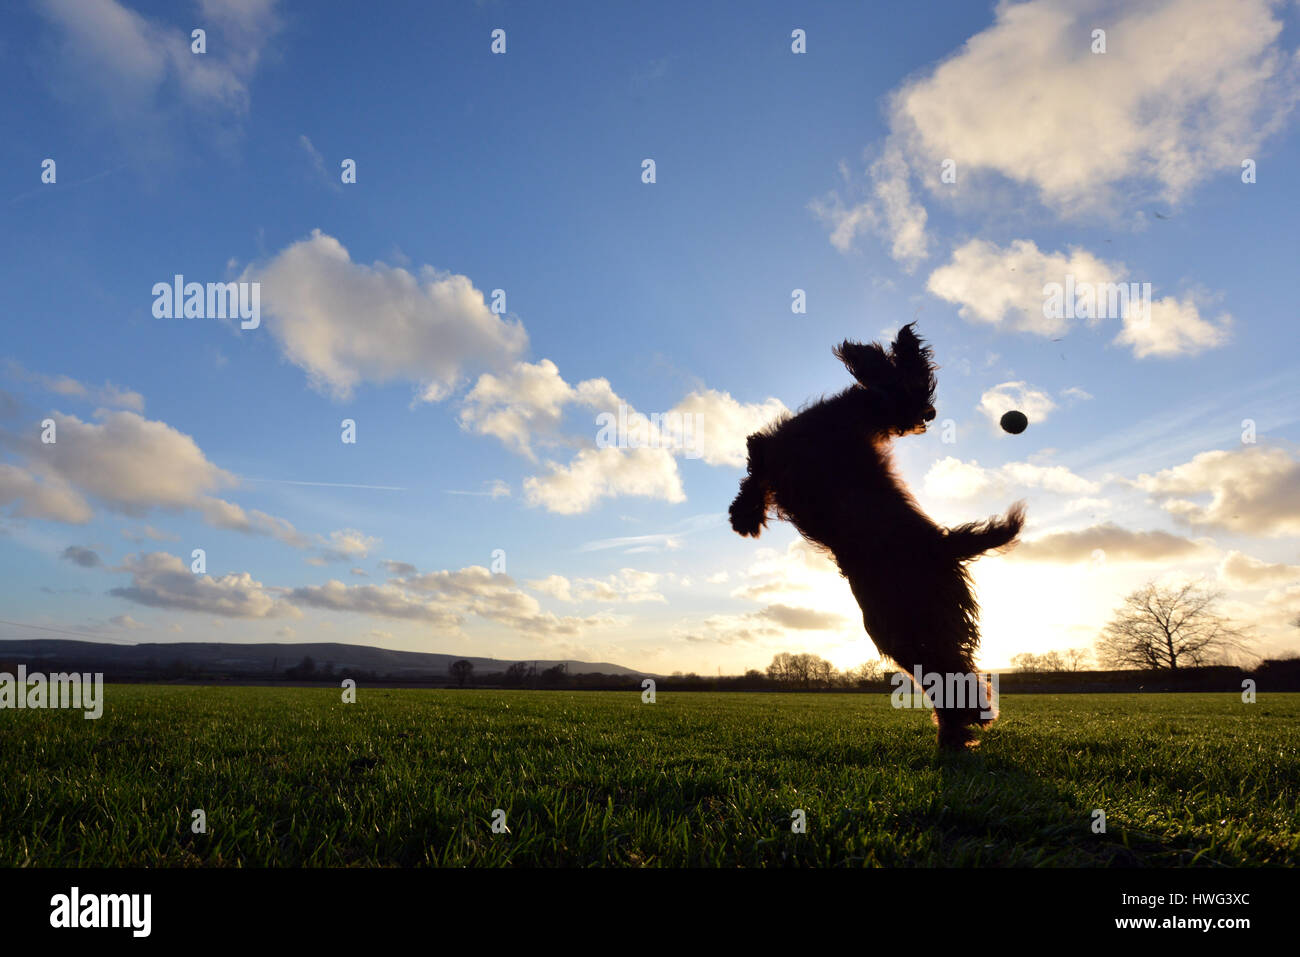 Ripe, East Sussex. 21st March 2017. Cocker spaniel leaping for a ball at the end of a bright and sunny Sussex day. - Stock Image